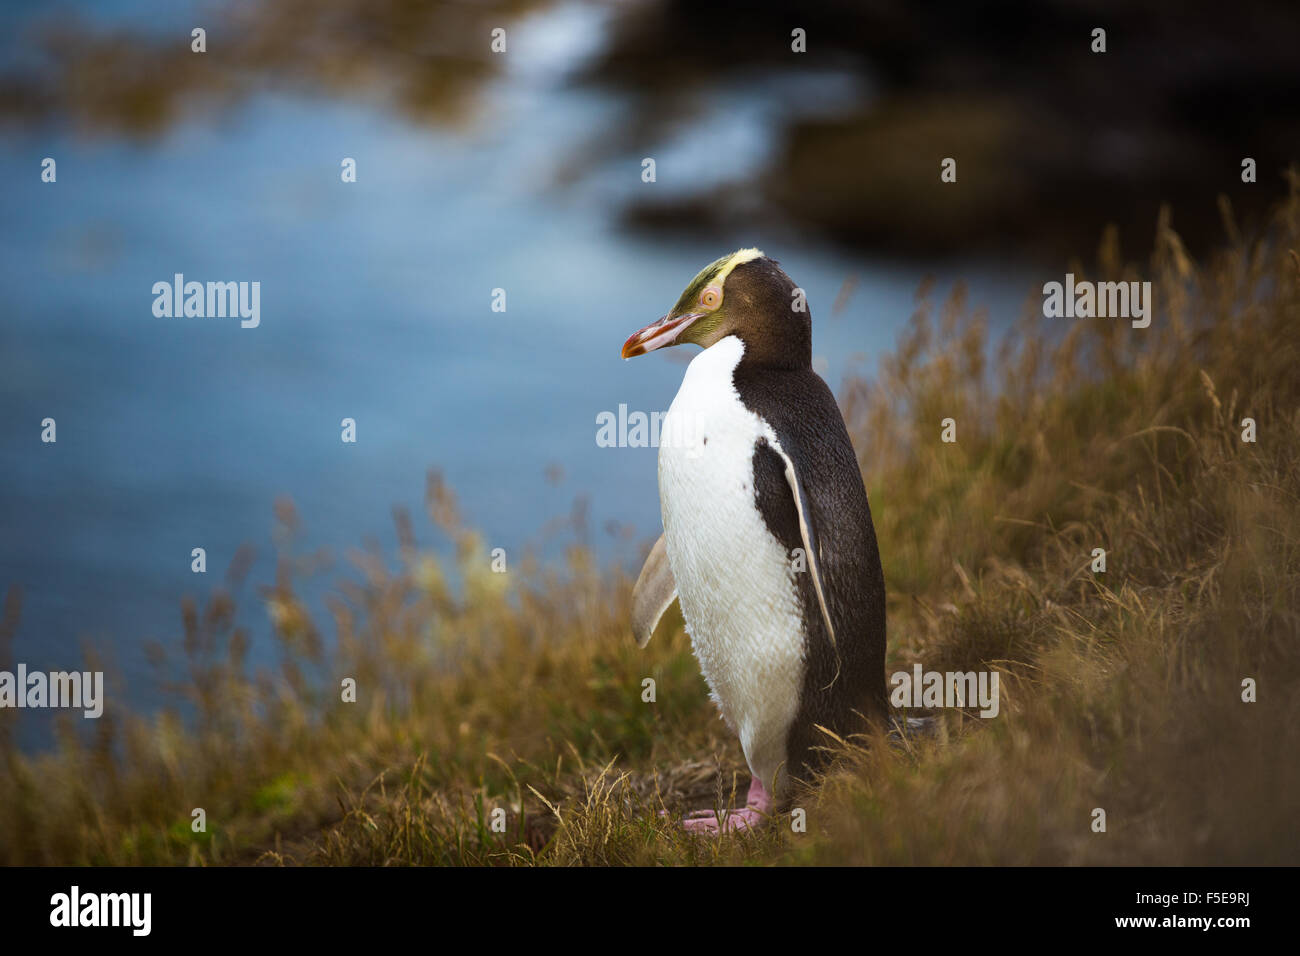 Yellow-eyed penguin (Megadyptes antipodes), Moeraki, île du Sud, Nouvelle-Zélande, Pacifique Photo Stock